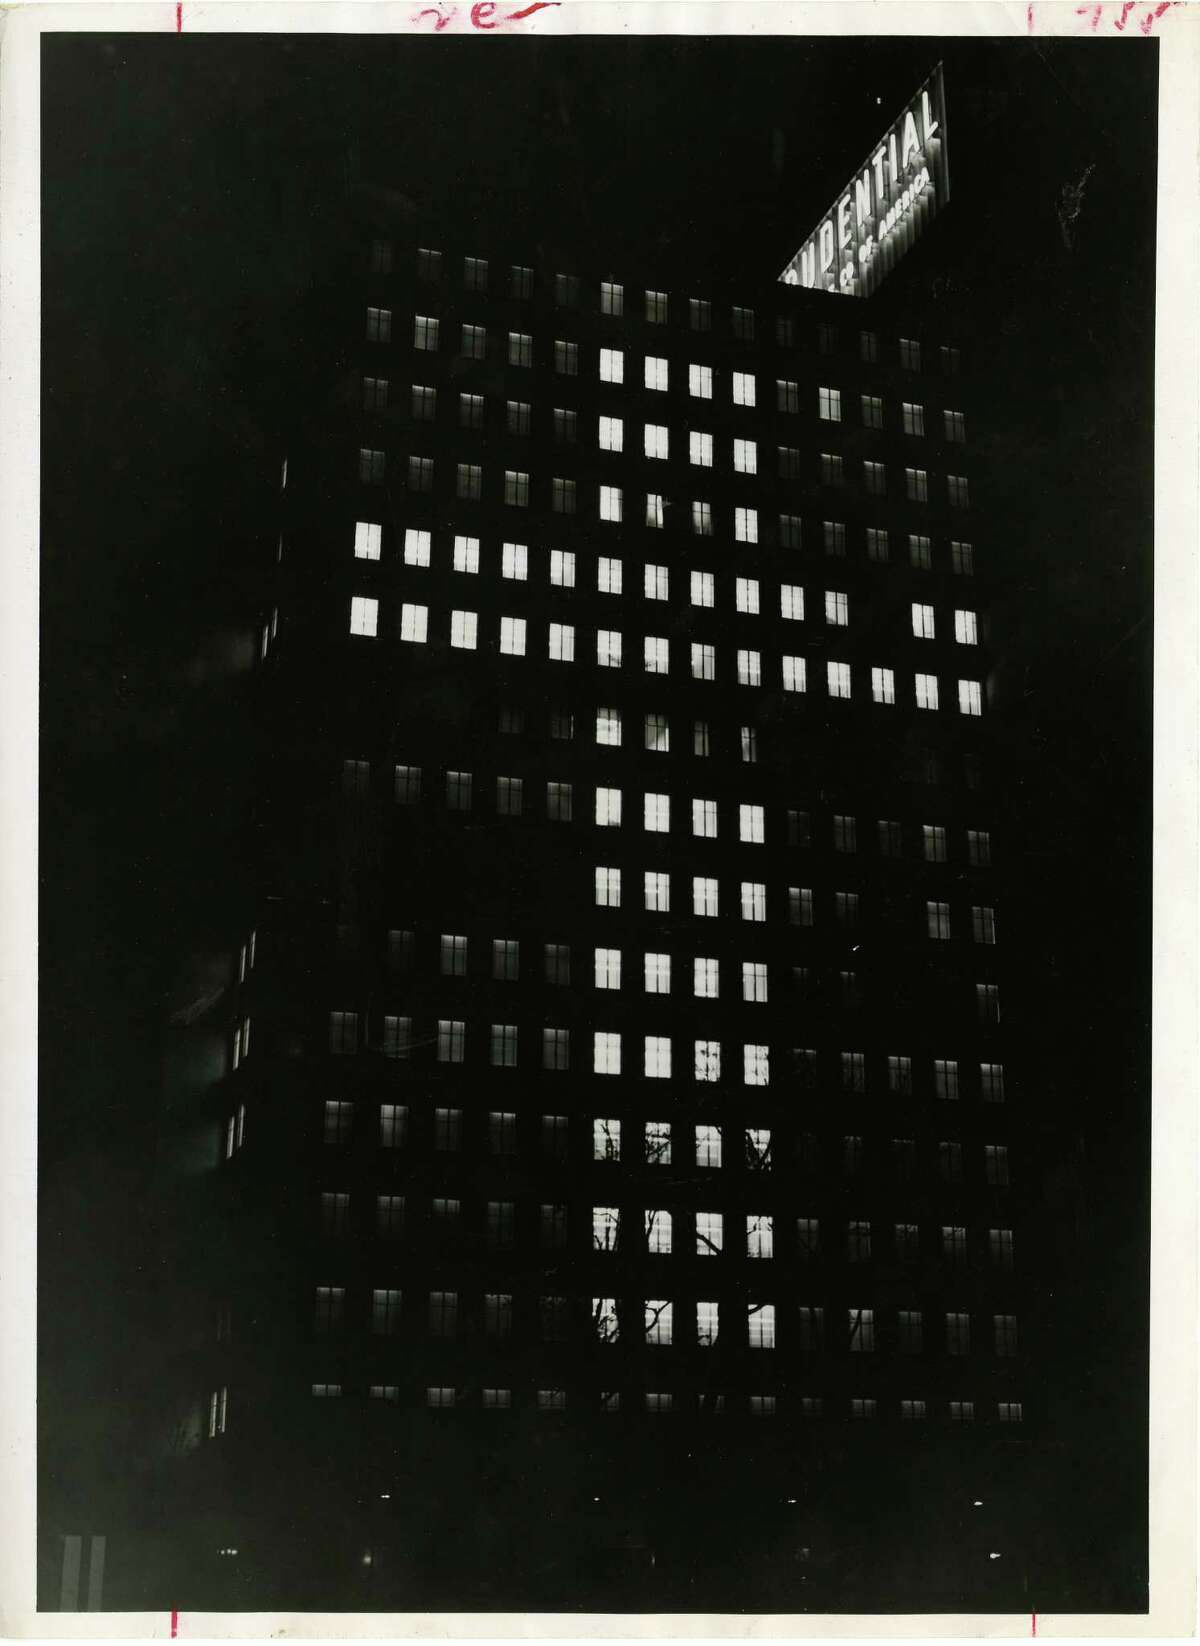 Dec. 24, 1953: The Prudential Building, located at 1100 Holcombe, is lit up for Christmas.